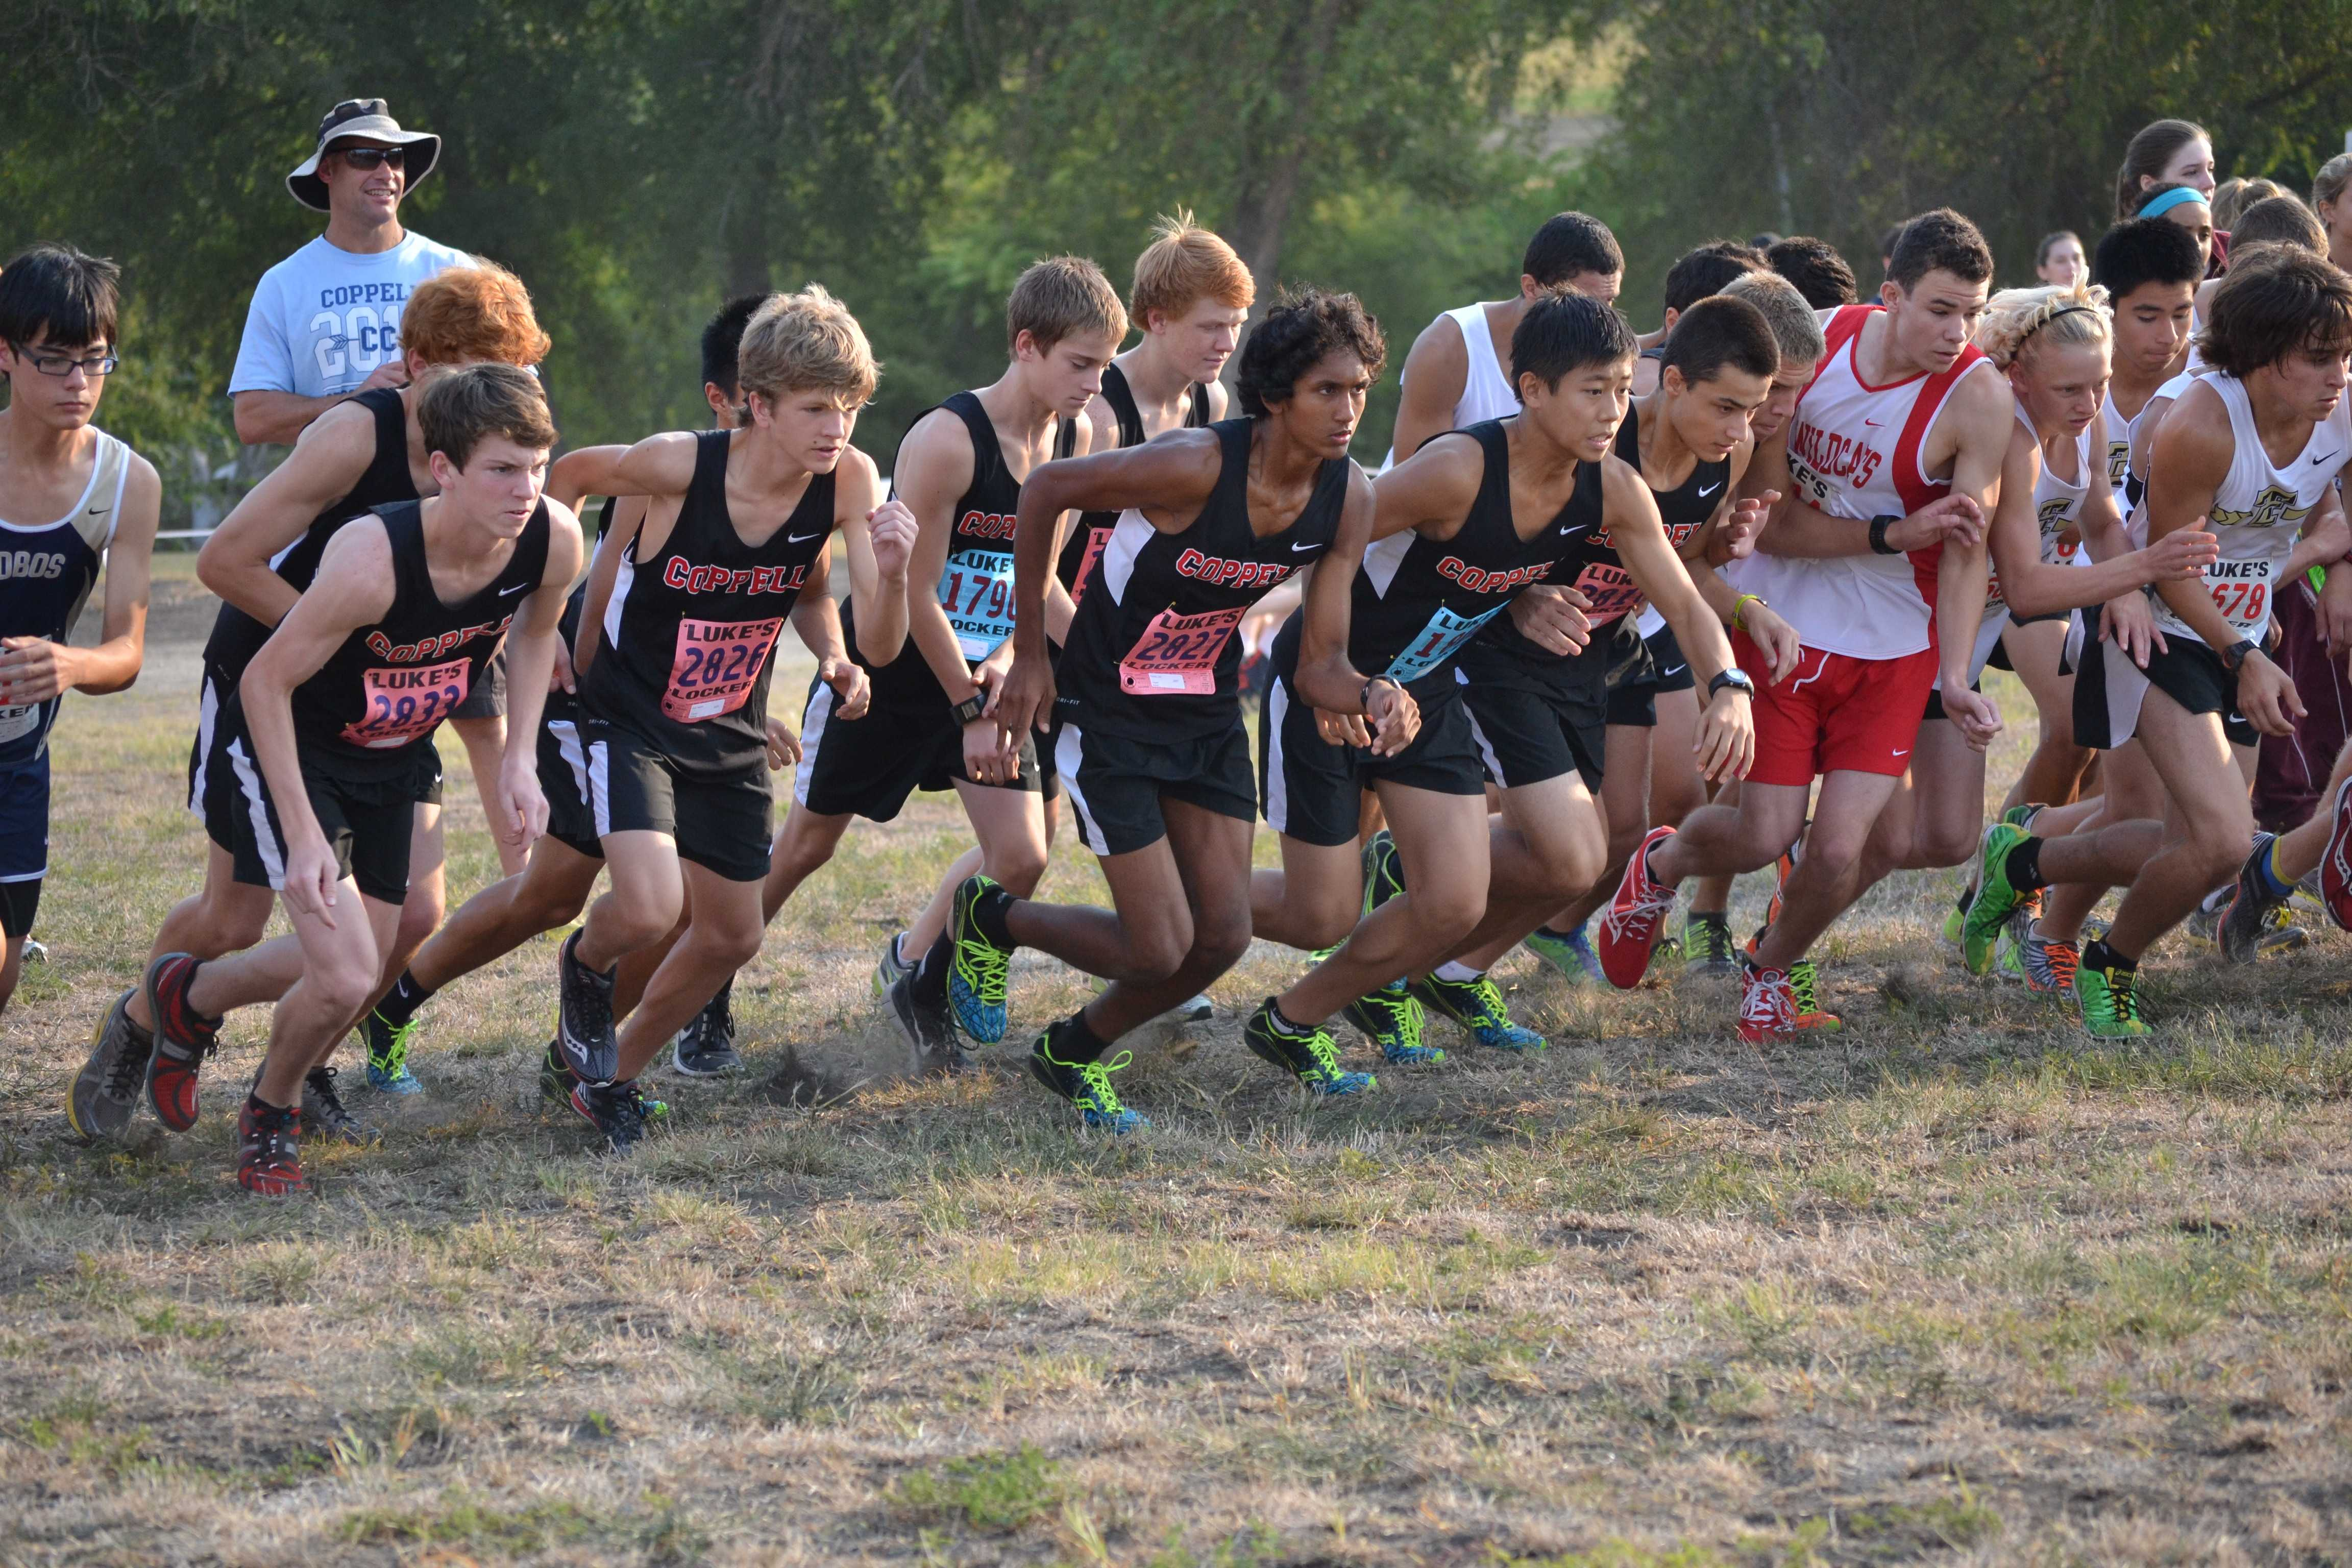 The Varsity boys team charges from the starting line at the Prosper Invitational. Photo by Elizabeth Sims.